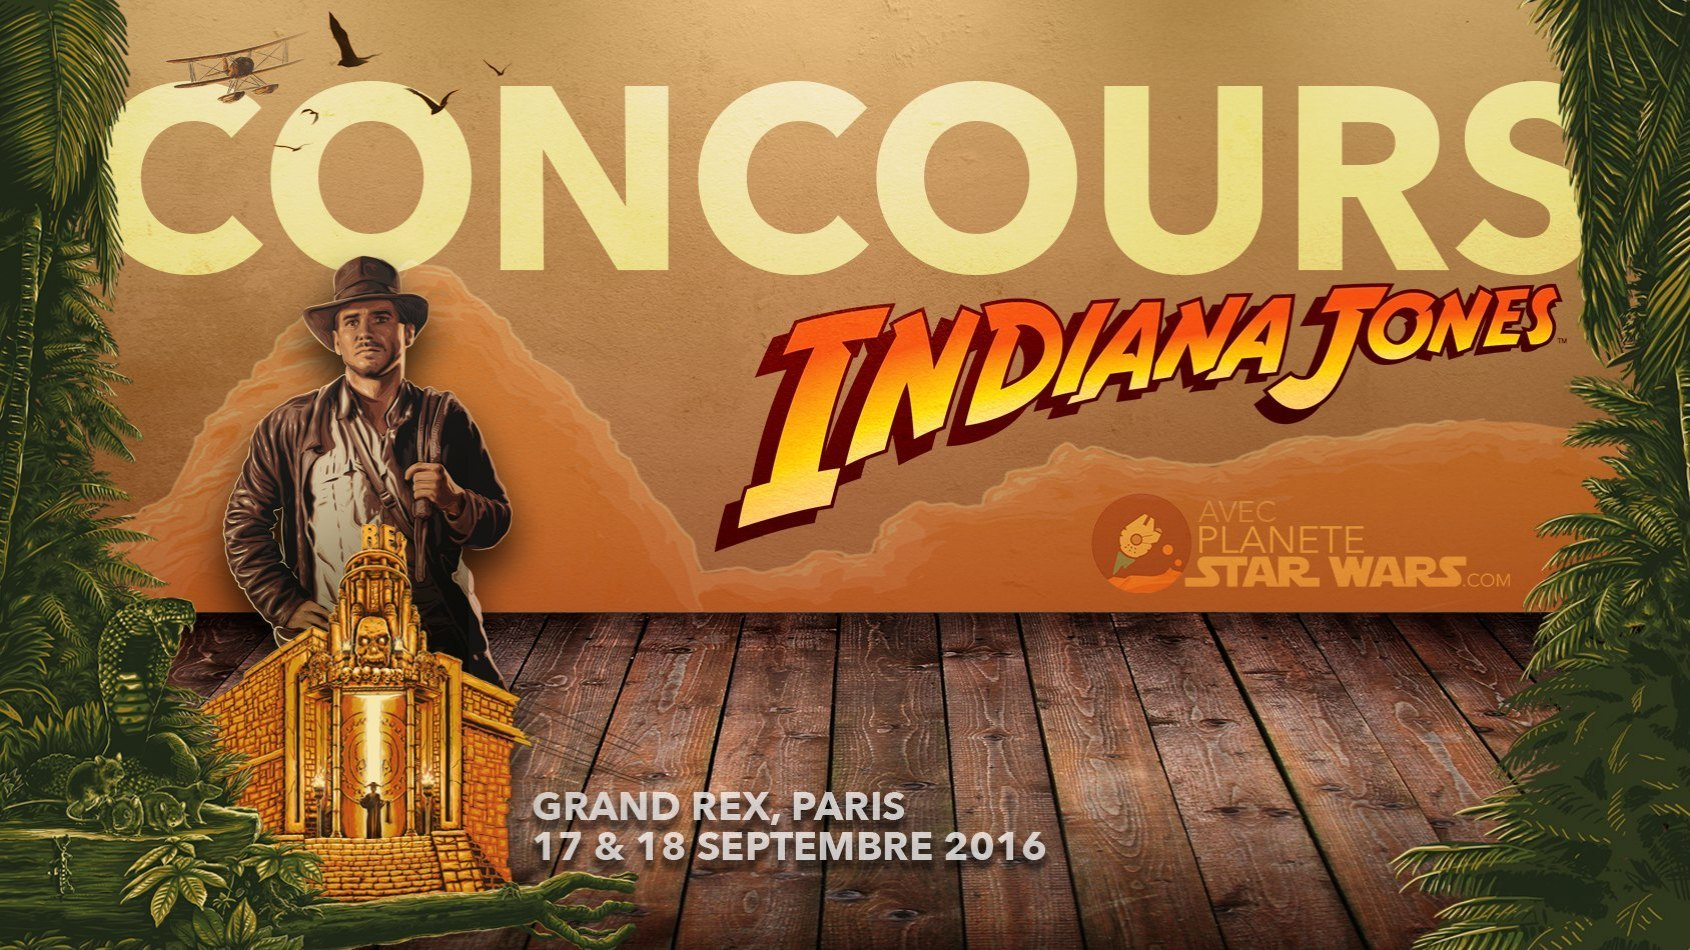 CONCOURS EVENEMENT Indiana Jones au Grand Rex